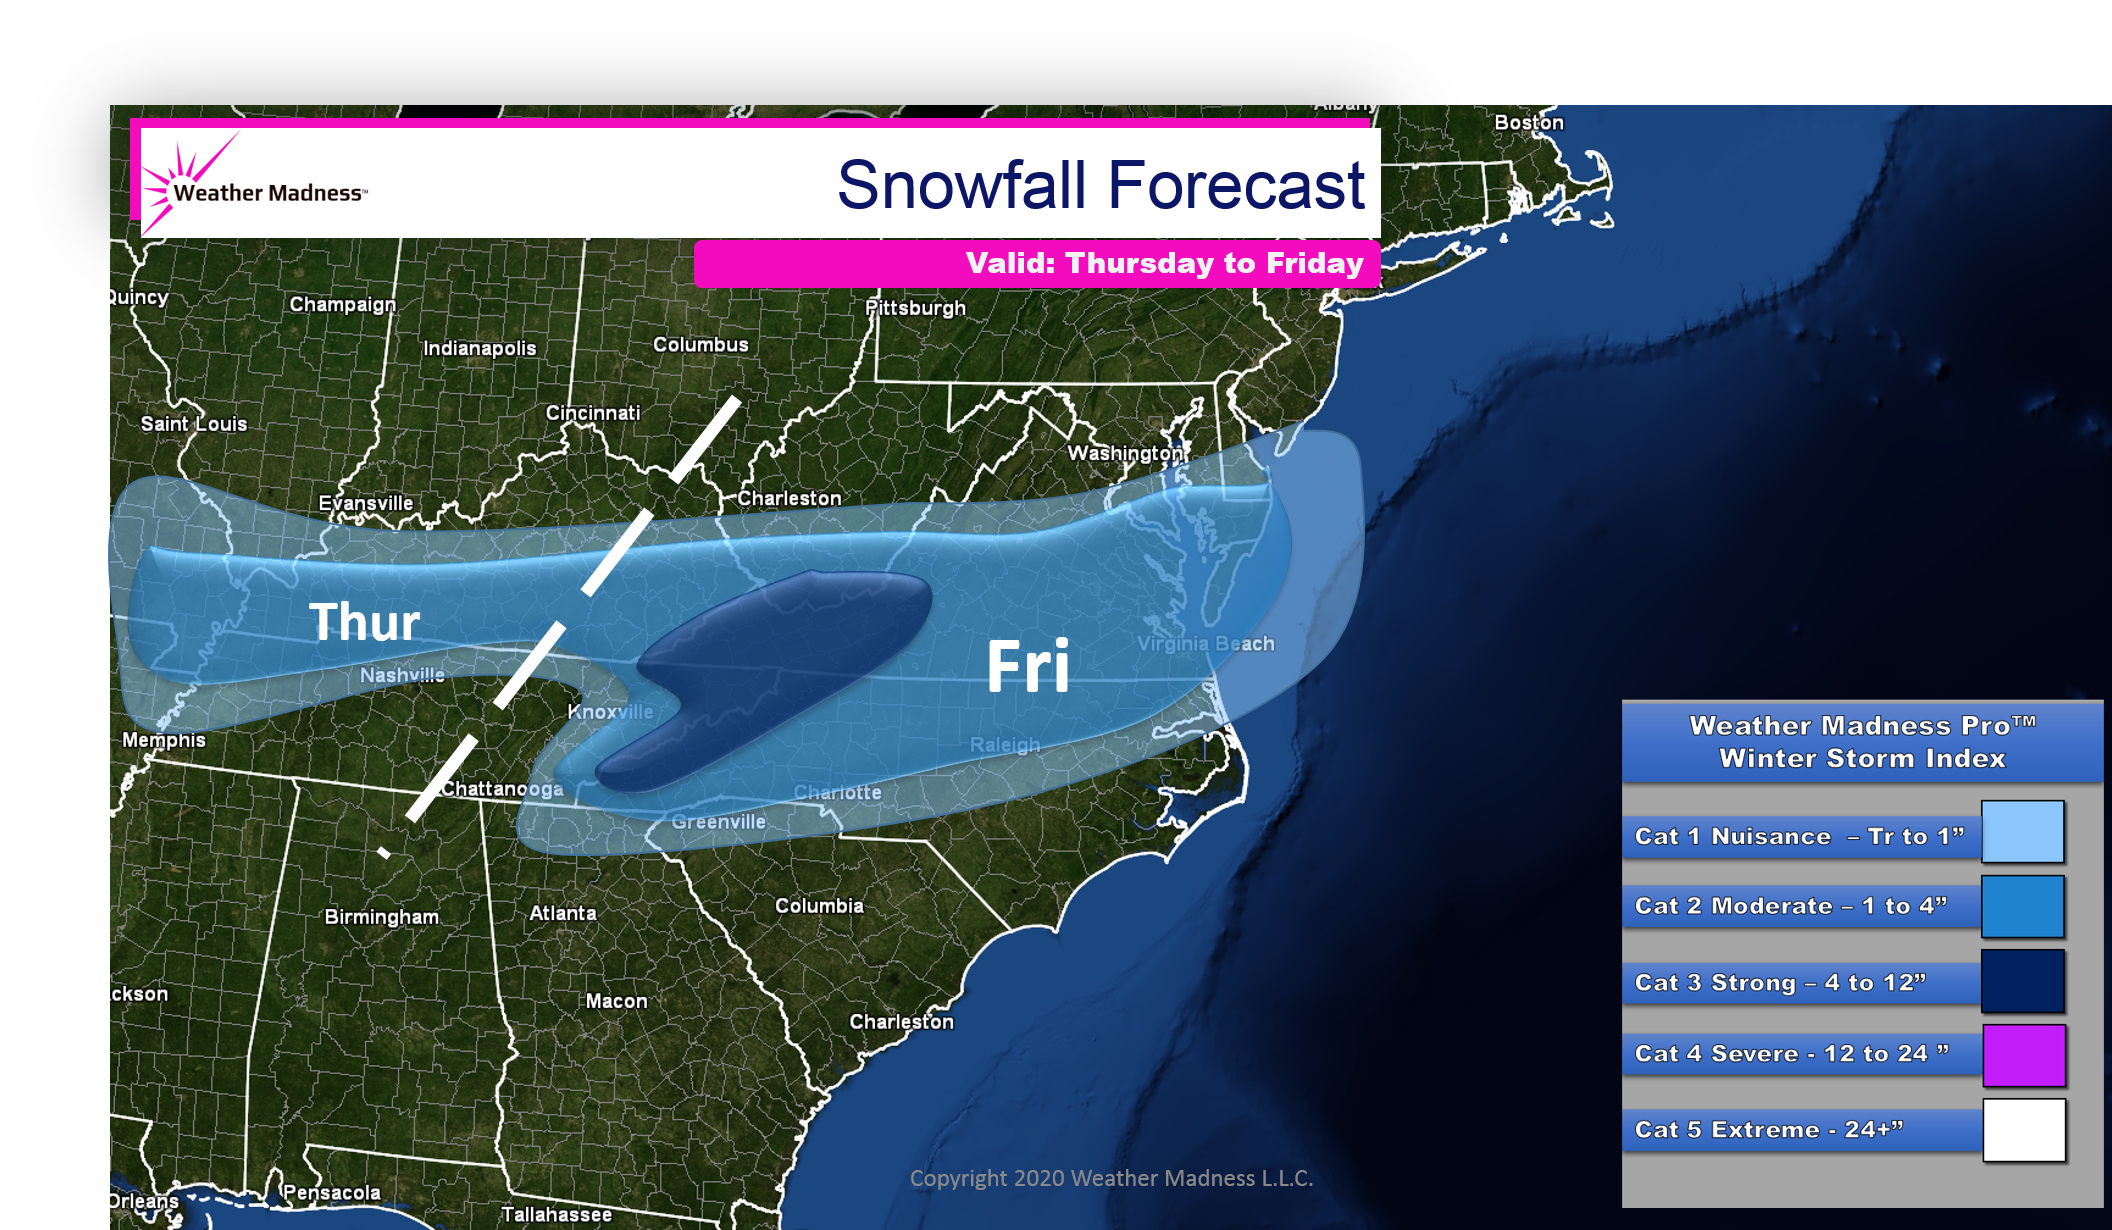 Snow Map for the Southern Storm Thursday and Friday. Winter Index 2-3